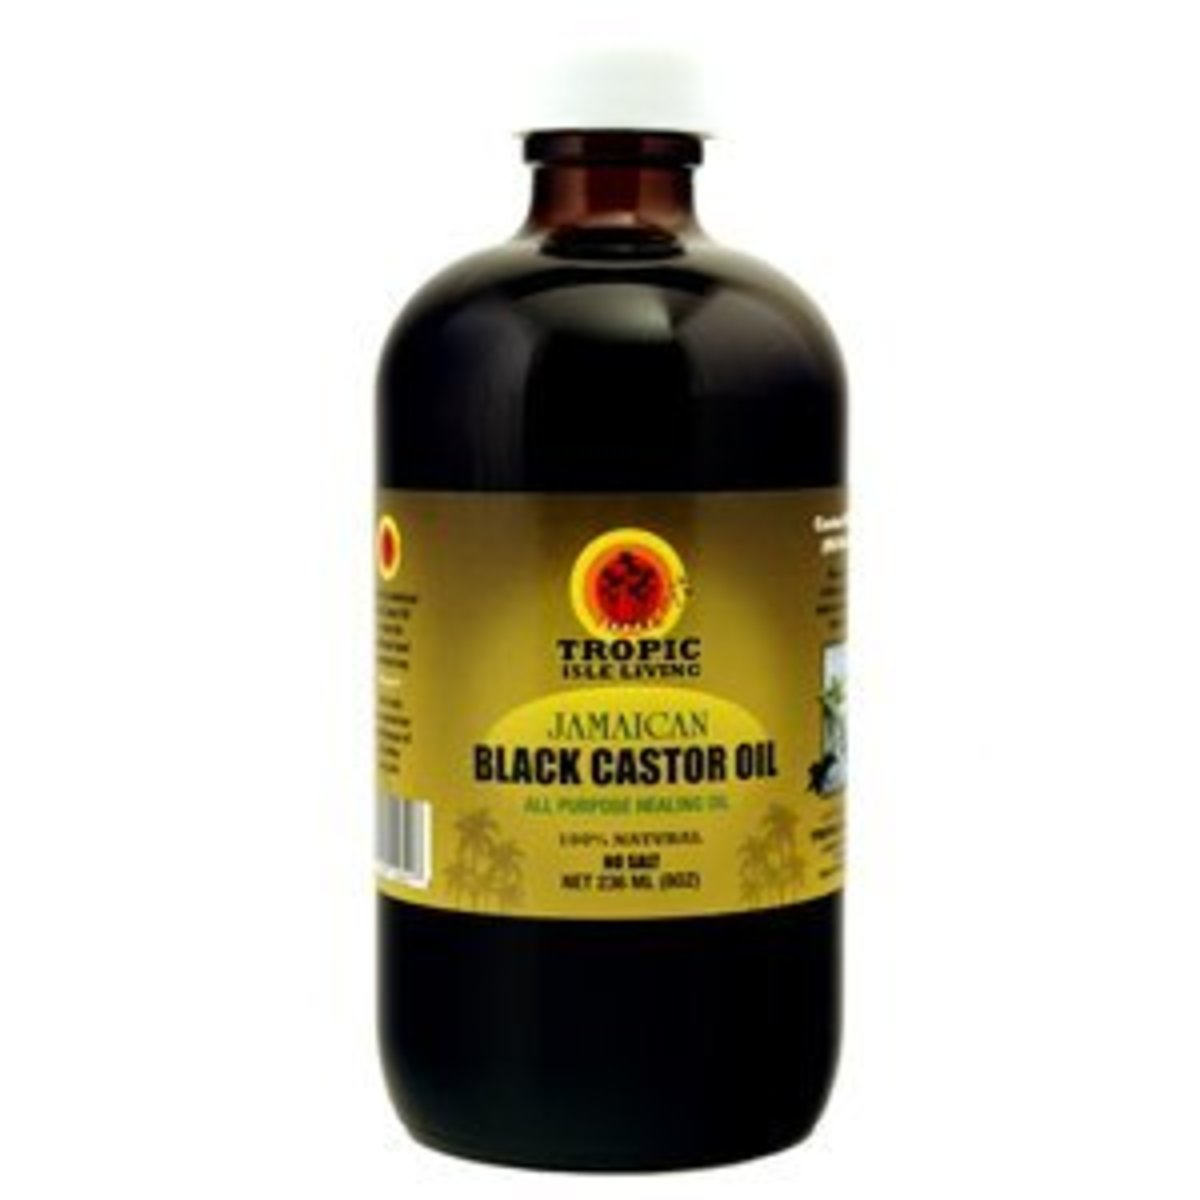 There are many castor oil for hair growth products out there.  This one is among the best.